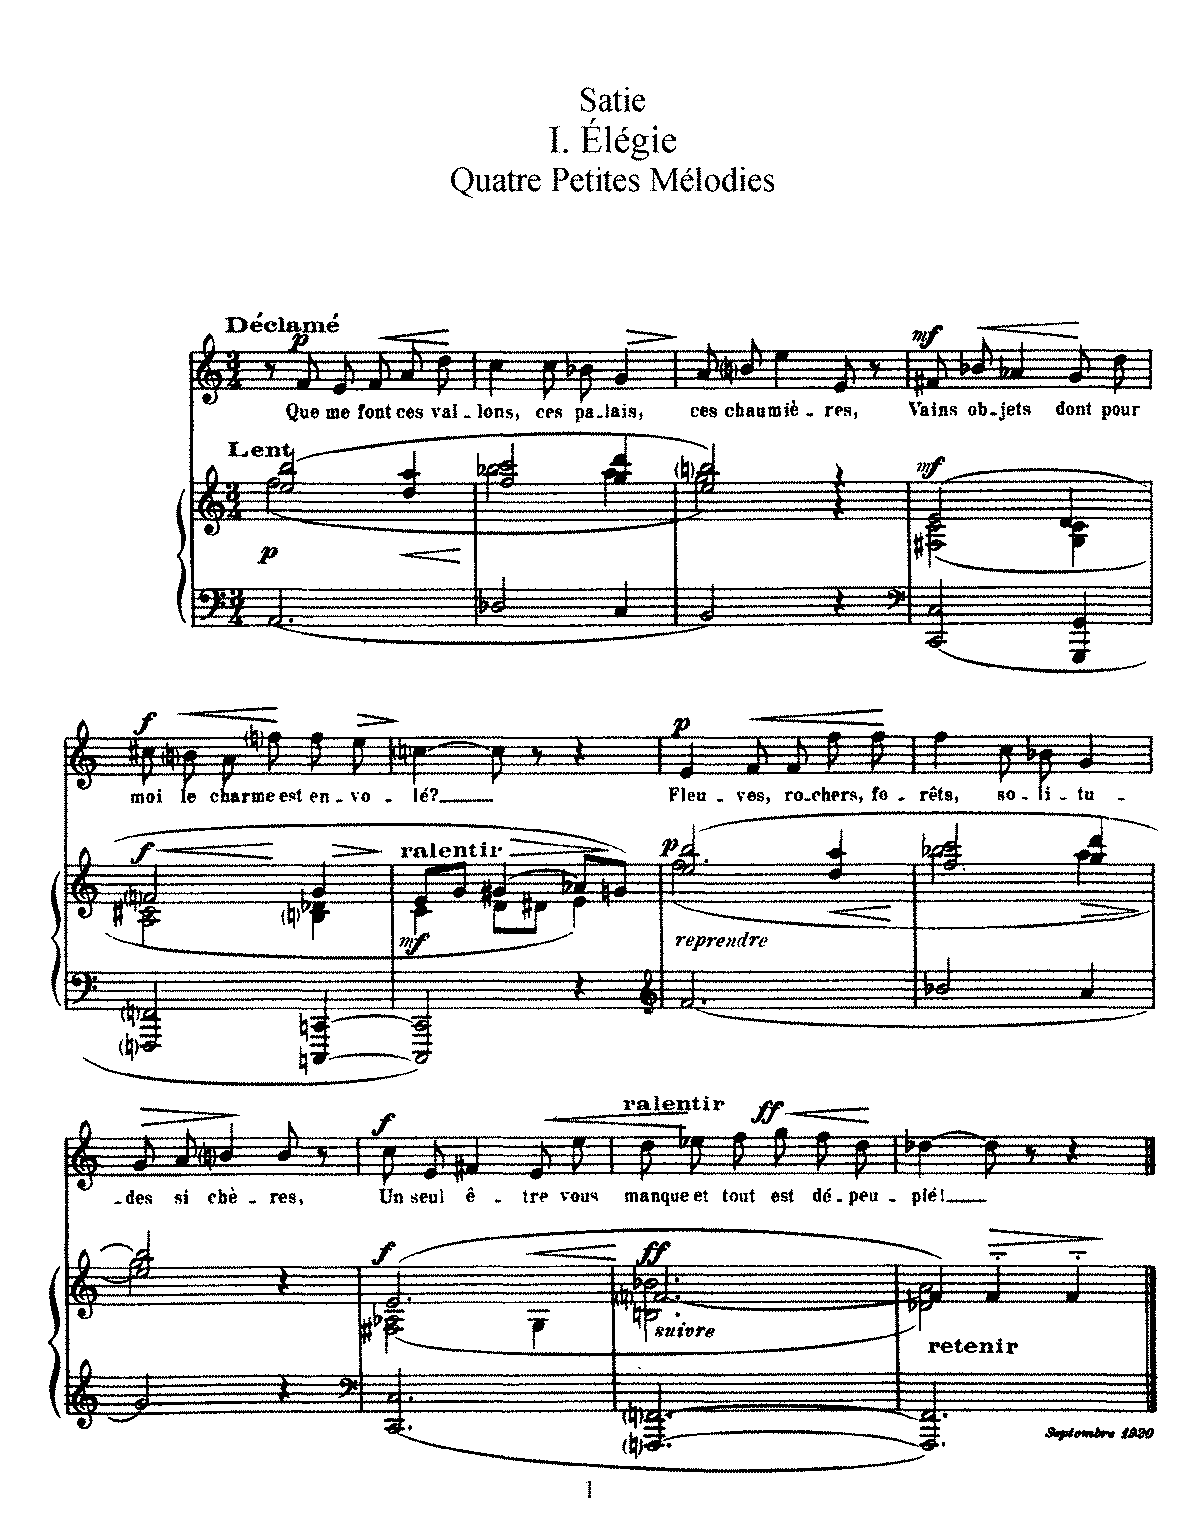 Satie - 4 petites mélodies (voice and piano).pdf